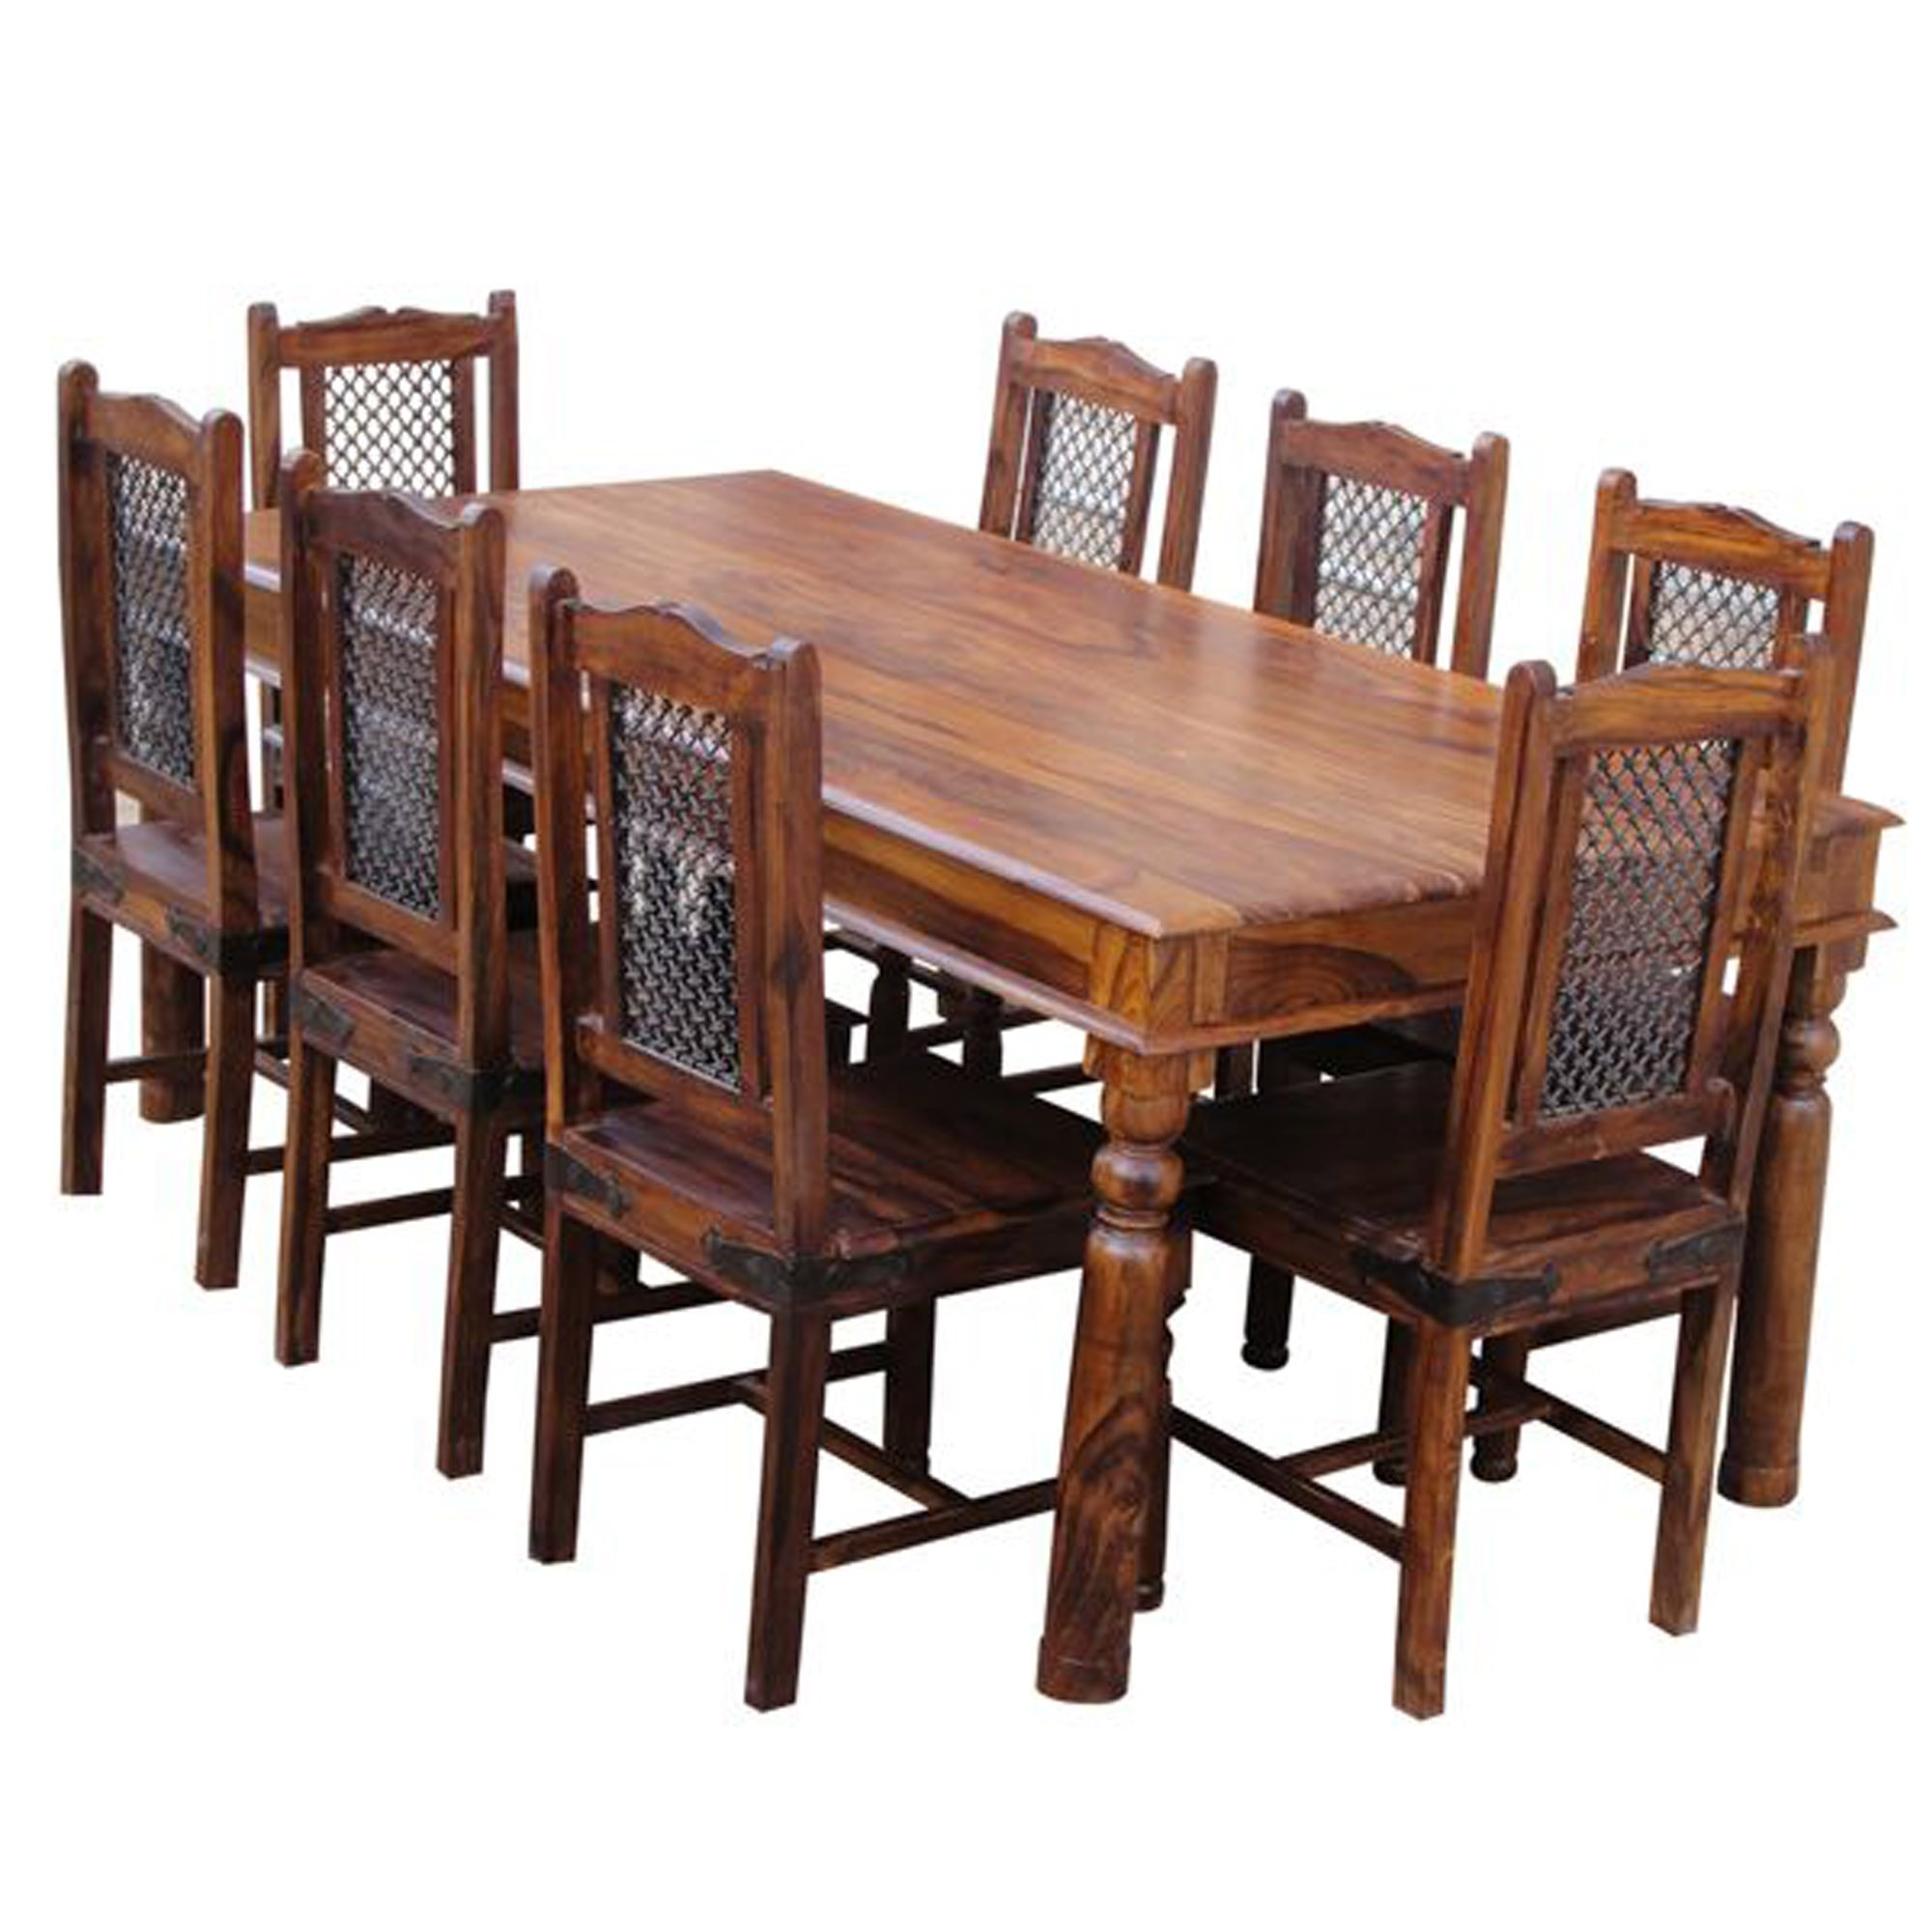 Ganga Extra Large Dining Table Wooden Dining Tables Dining Tables